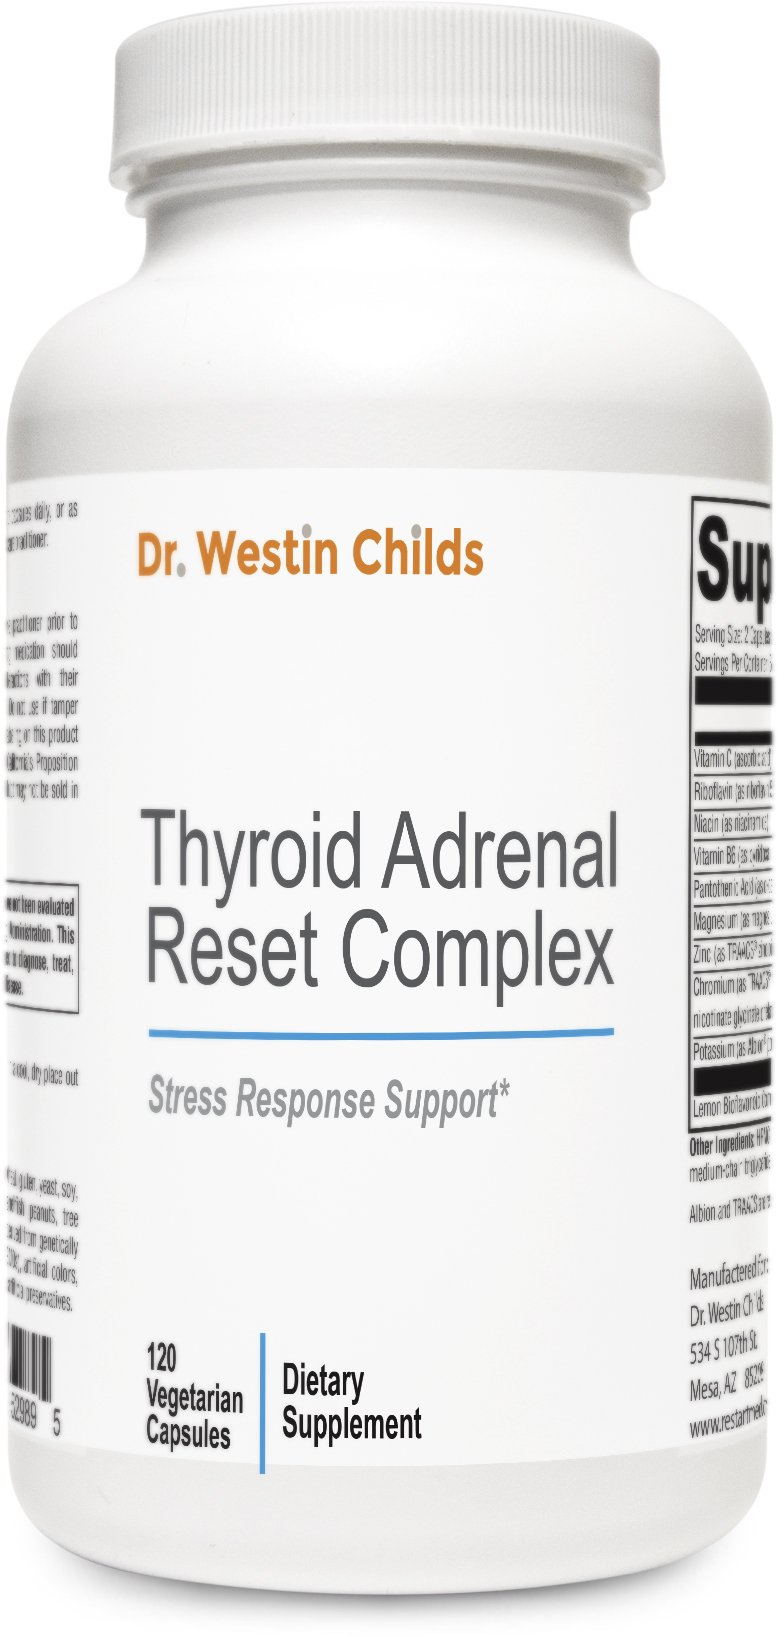 Thyroid Adrenal Reset Complex - #1 Adrenal and Thyroid Support Supplement for Hypothyroid Patients with Thyroid/Adrenal Restoration Blend & Anti-inflammatory Blend - Non-GMO - 60 Day Supply